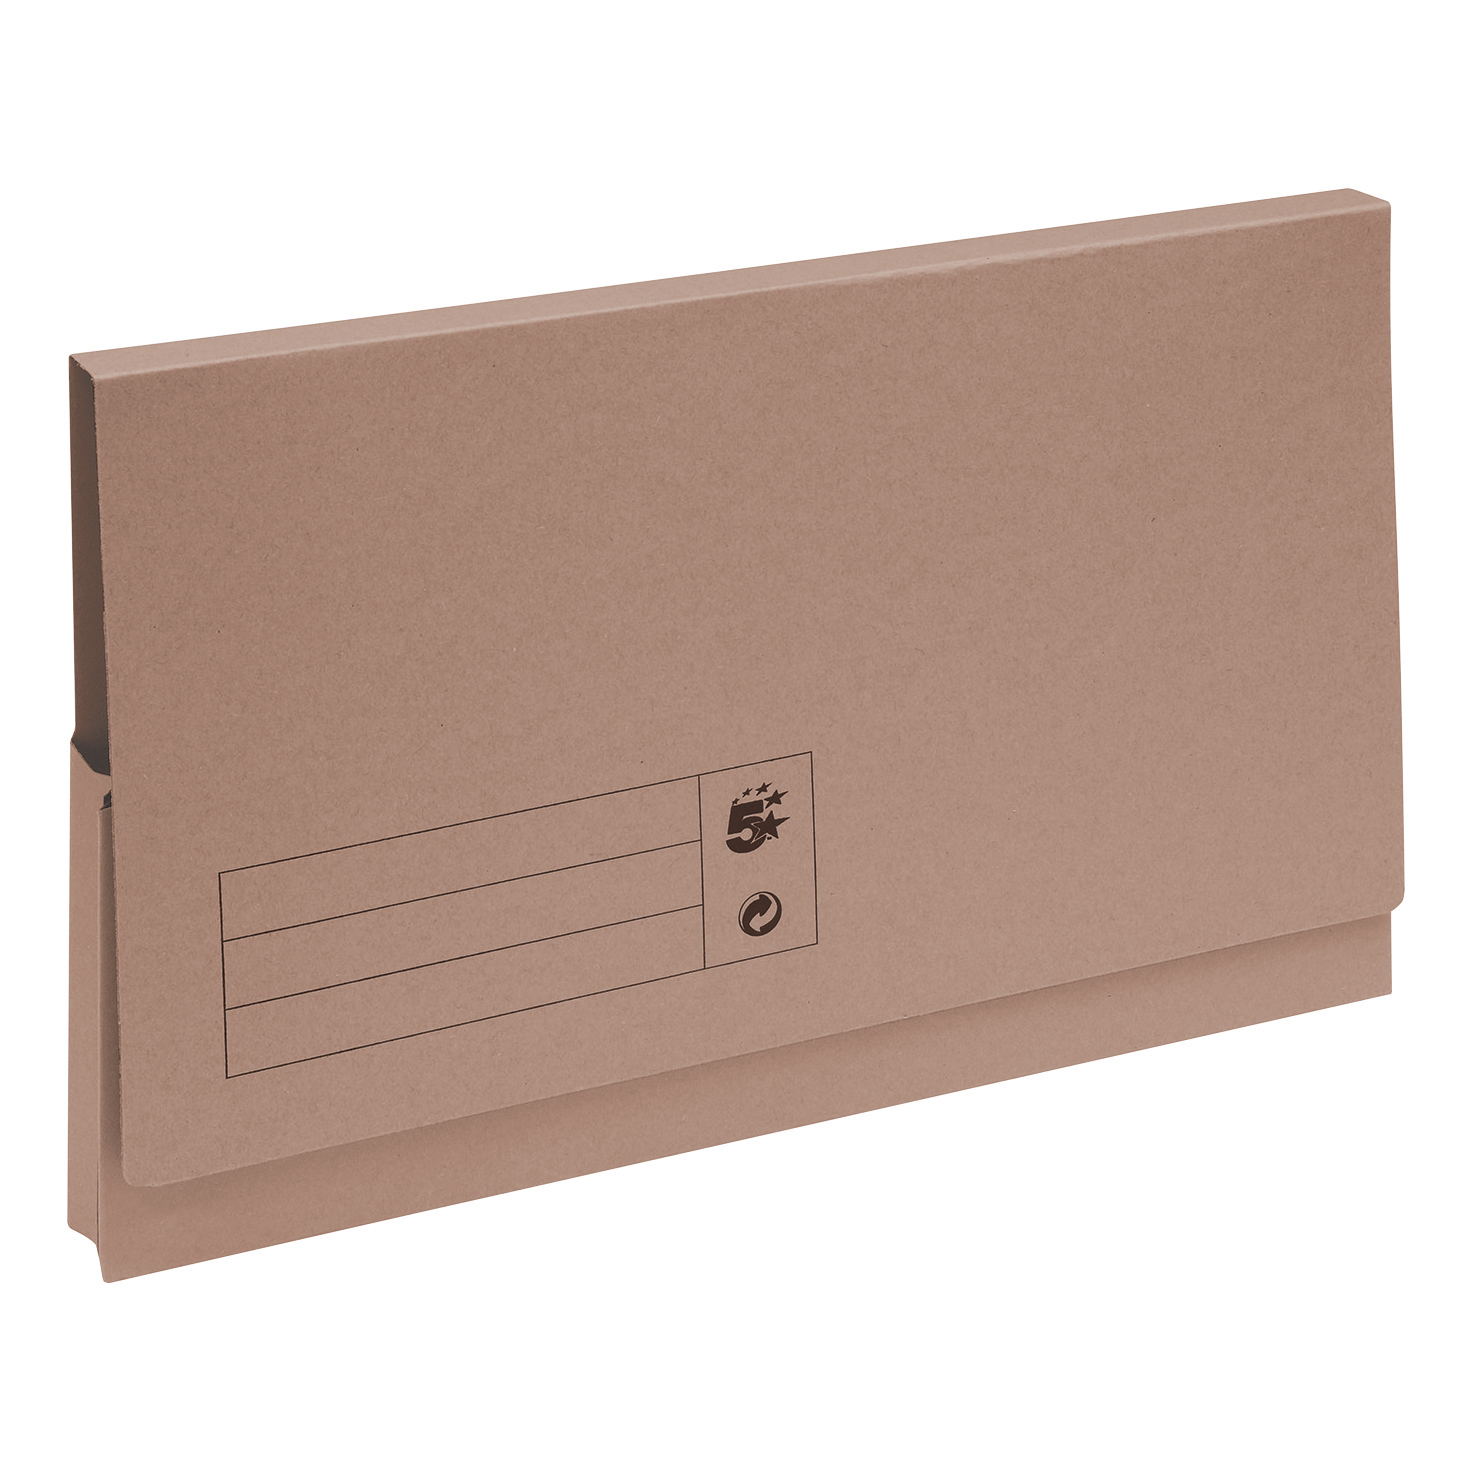 5 Star Office Document Wallet Full Flap 285gsm Recycled Capacity 32mm Foolscap Buff Pack 50